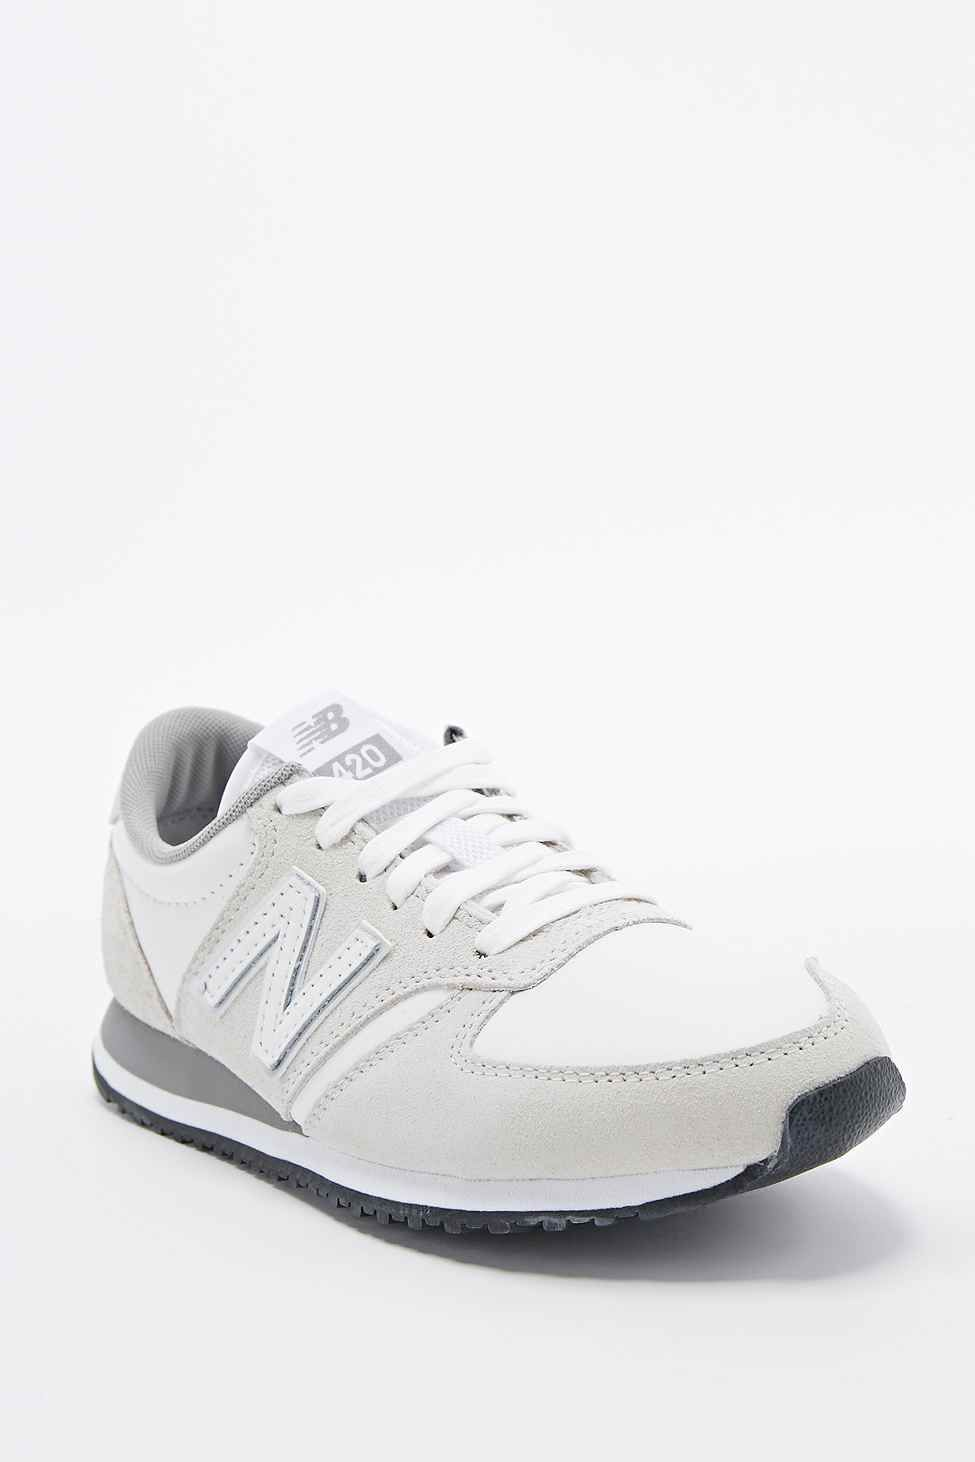 premium selection f4eb8 41beb New Balance 420 Suede Runner Trainers in White